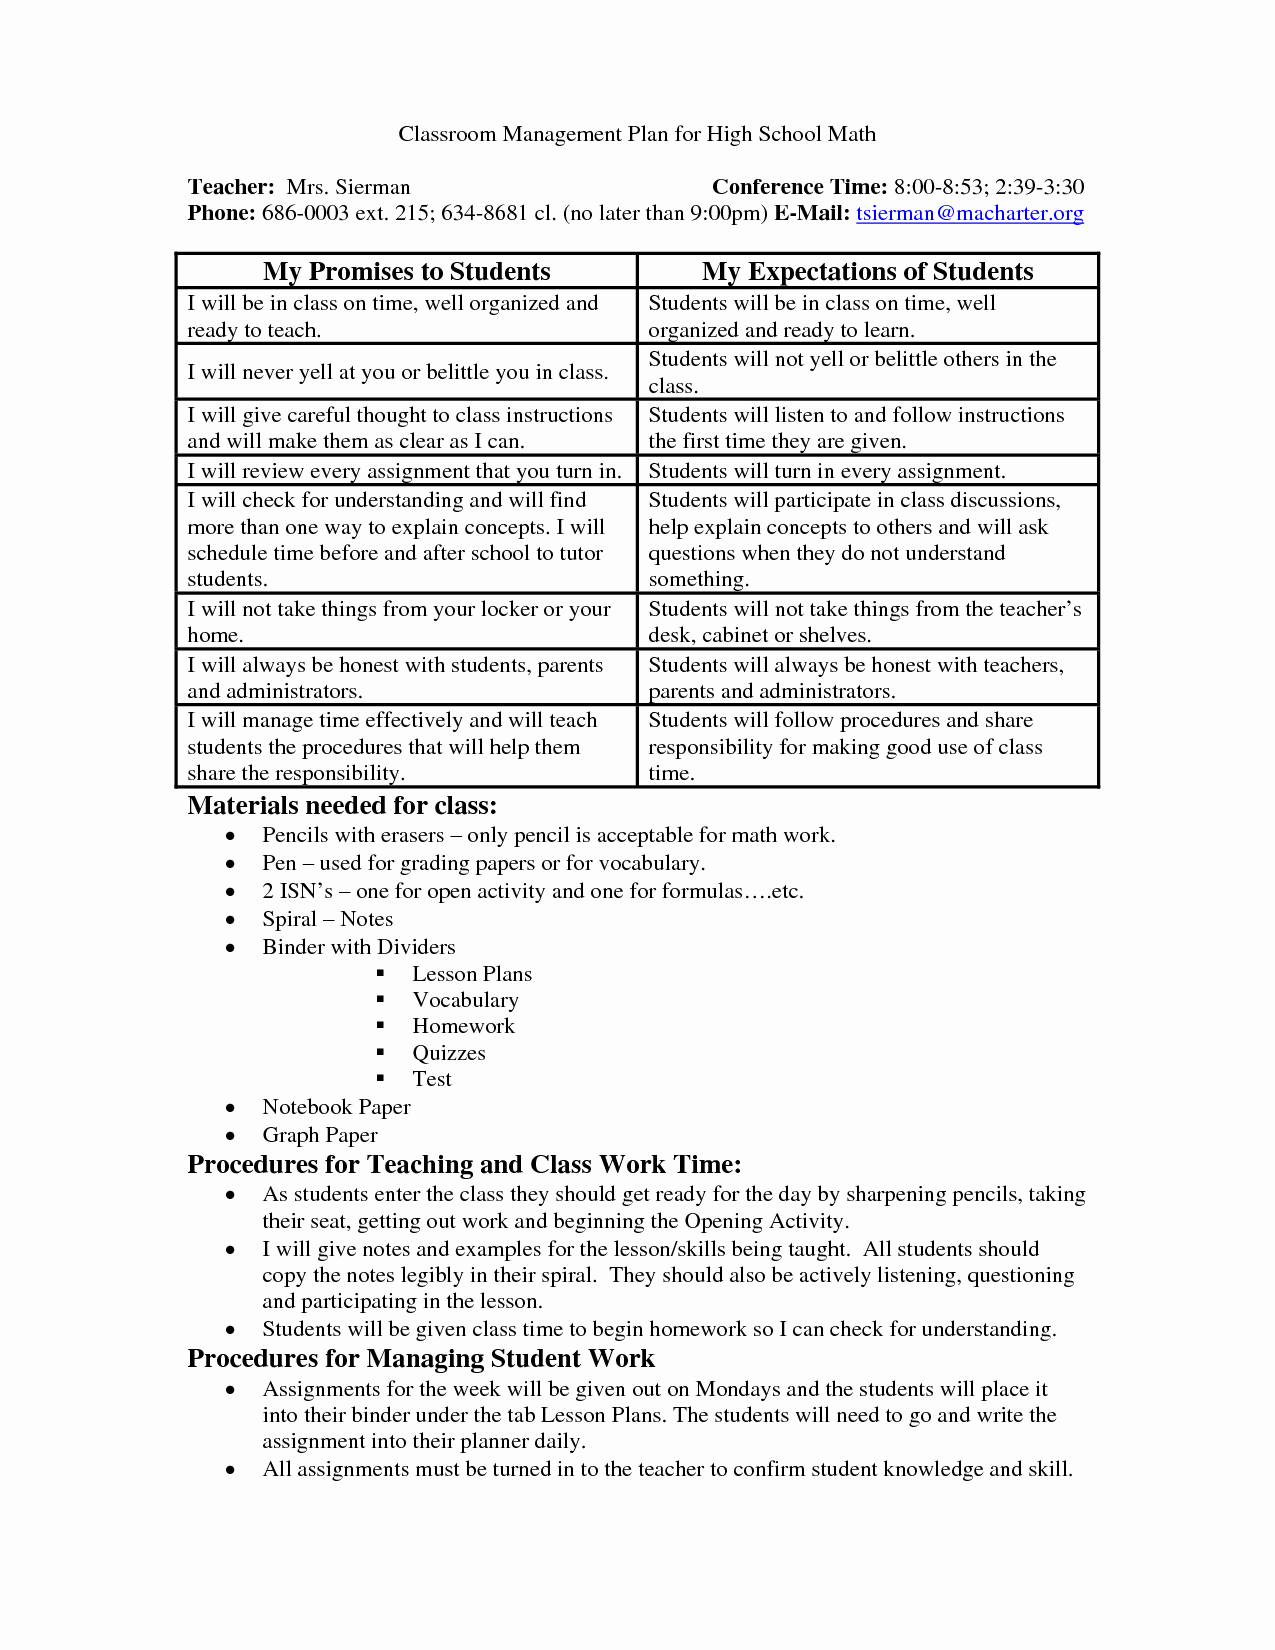 Classroom Management Plan Template Elementary Unique School Wide Examples Discipline Plan Classroom